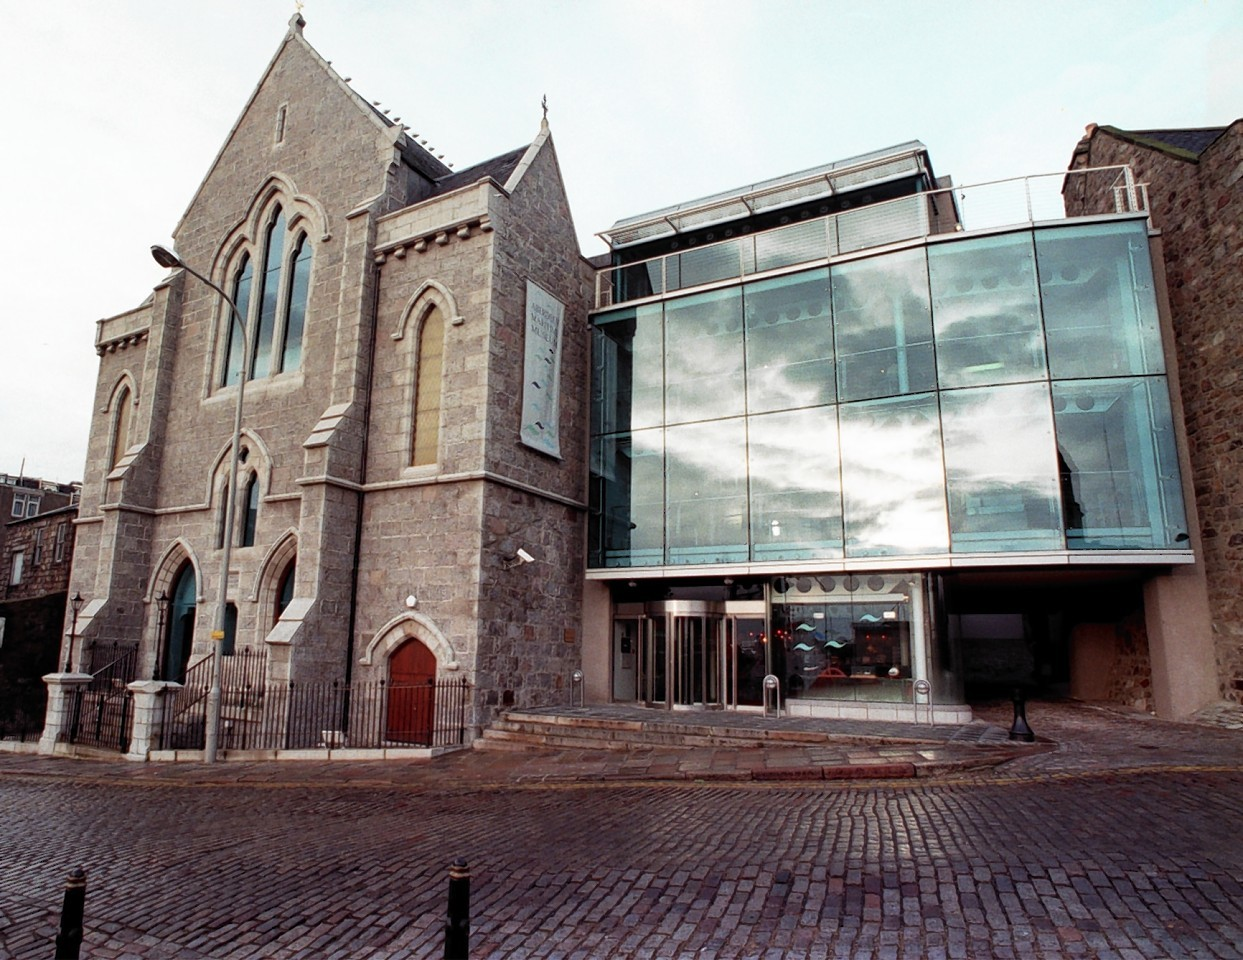 The exhibition will be staged at Aberdeen Maritime Museum